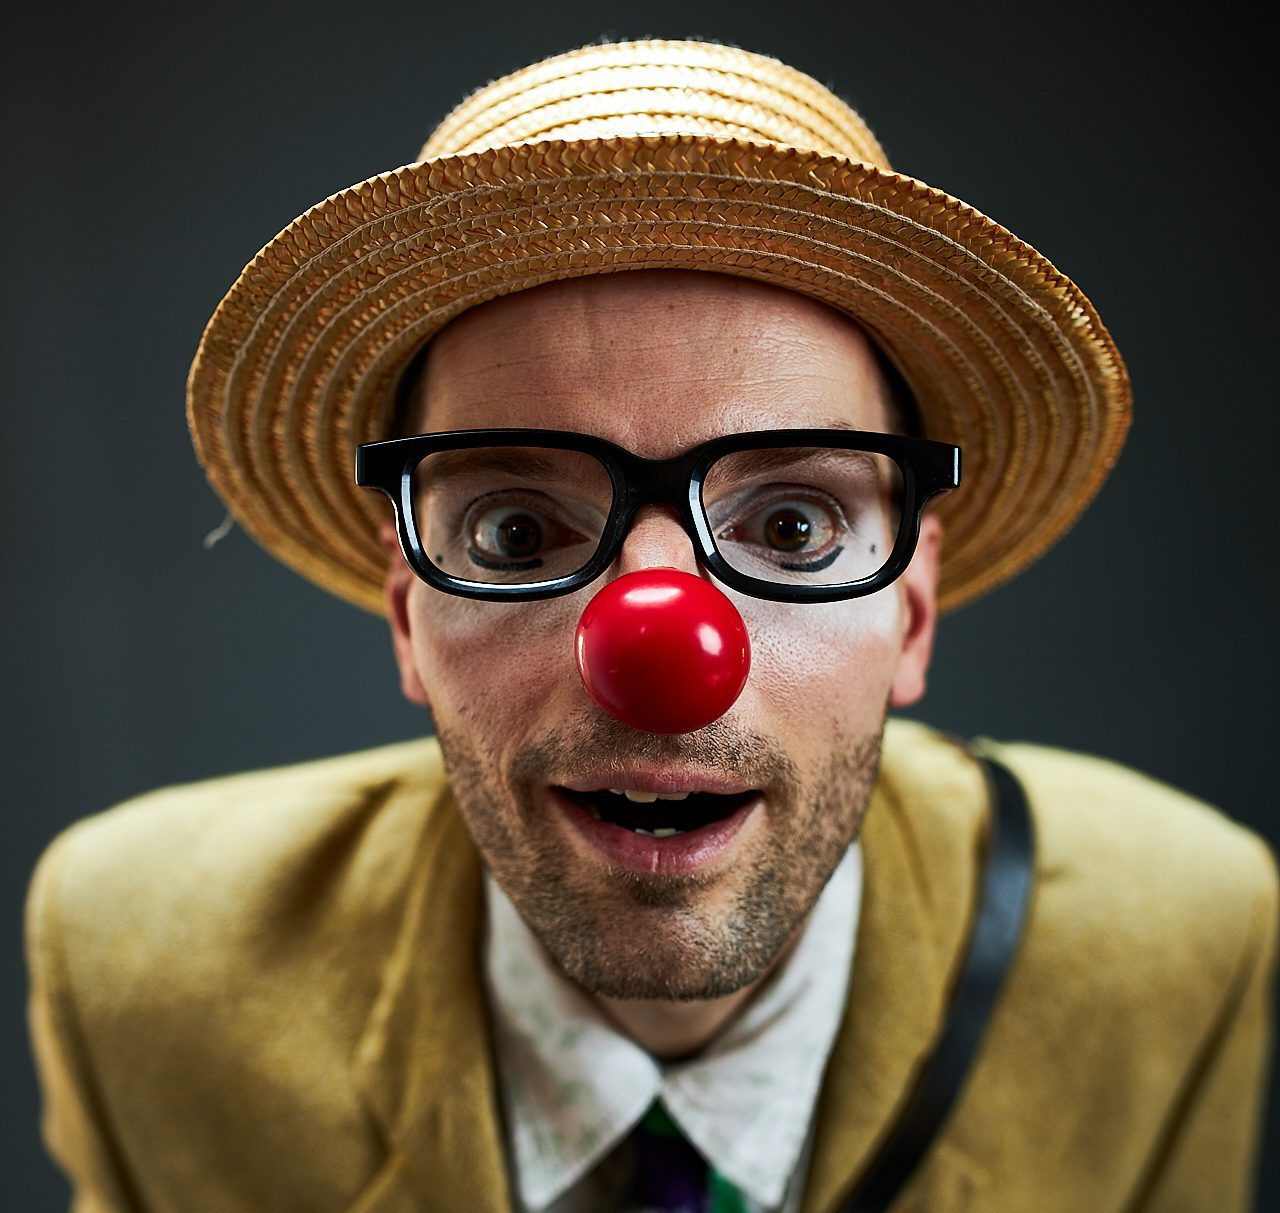 Portraits_Matze_Clown_12_06_2010654 (2)